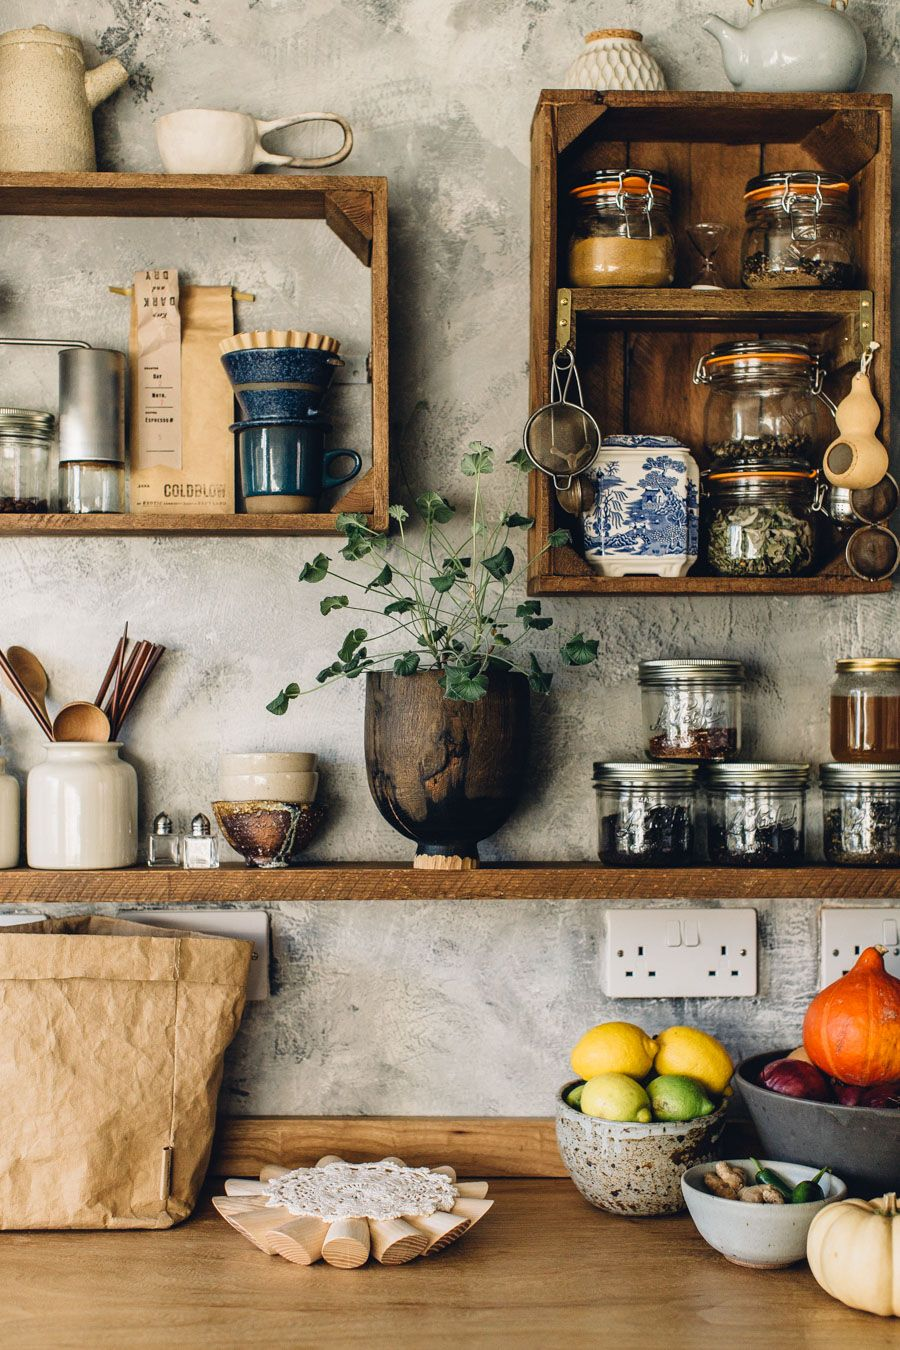 Cucina Rustica Meaning A Hand Built Kitchen In East Sussex Ways My House Should Look